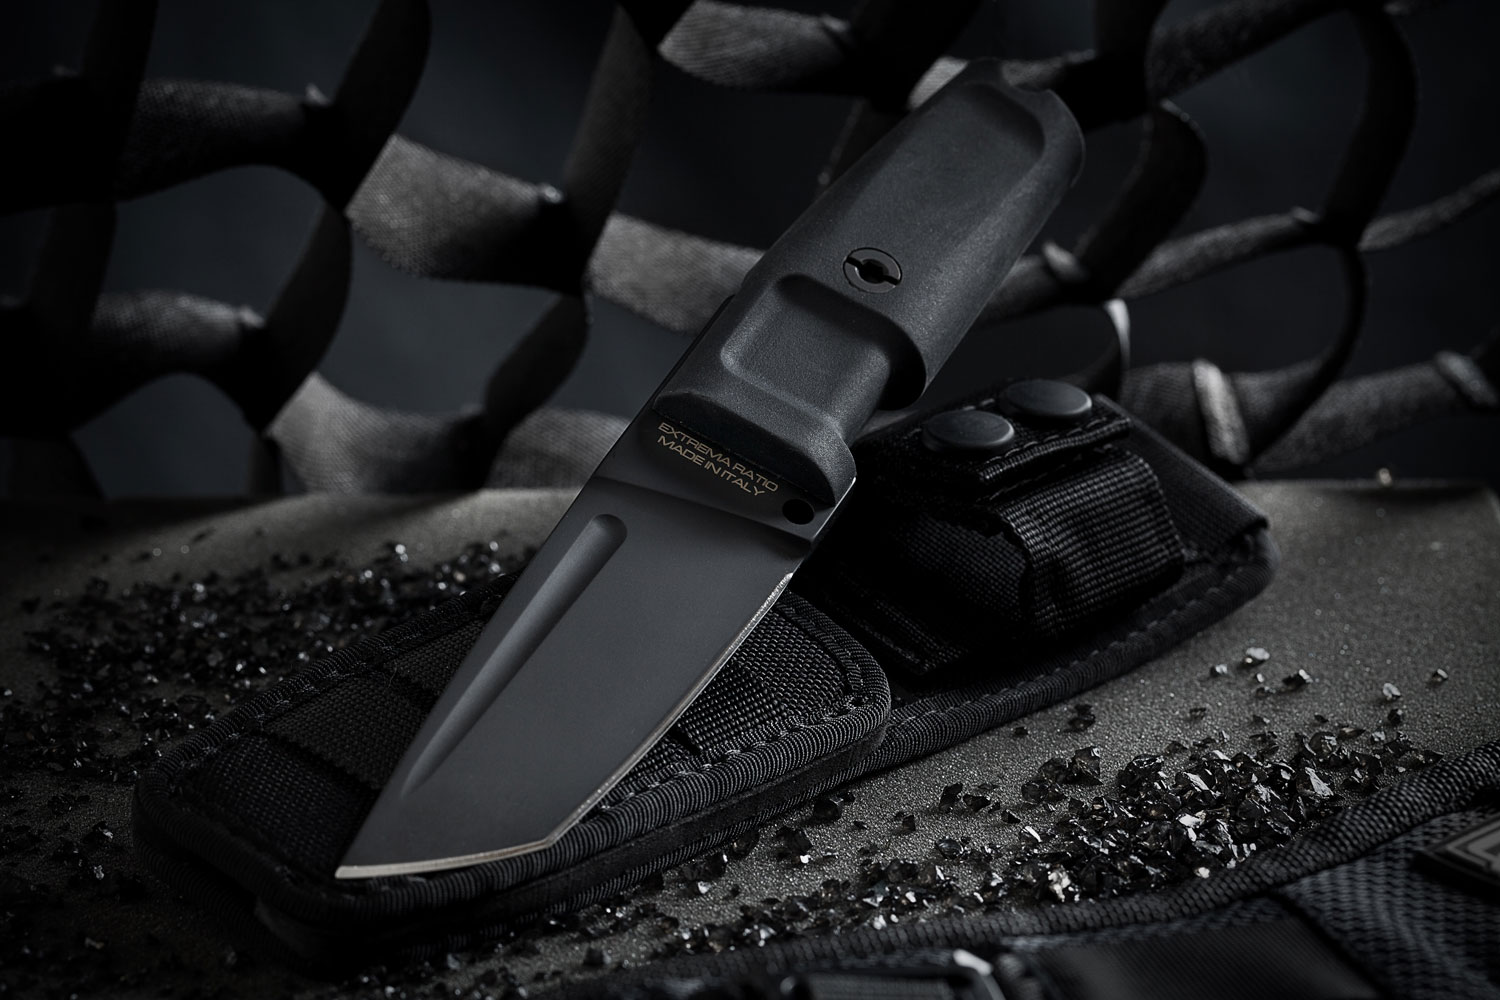 extrema-ratio-tactical-knife-coltelli-studio-fotografico-lorenzo-michelini